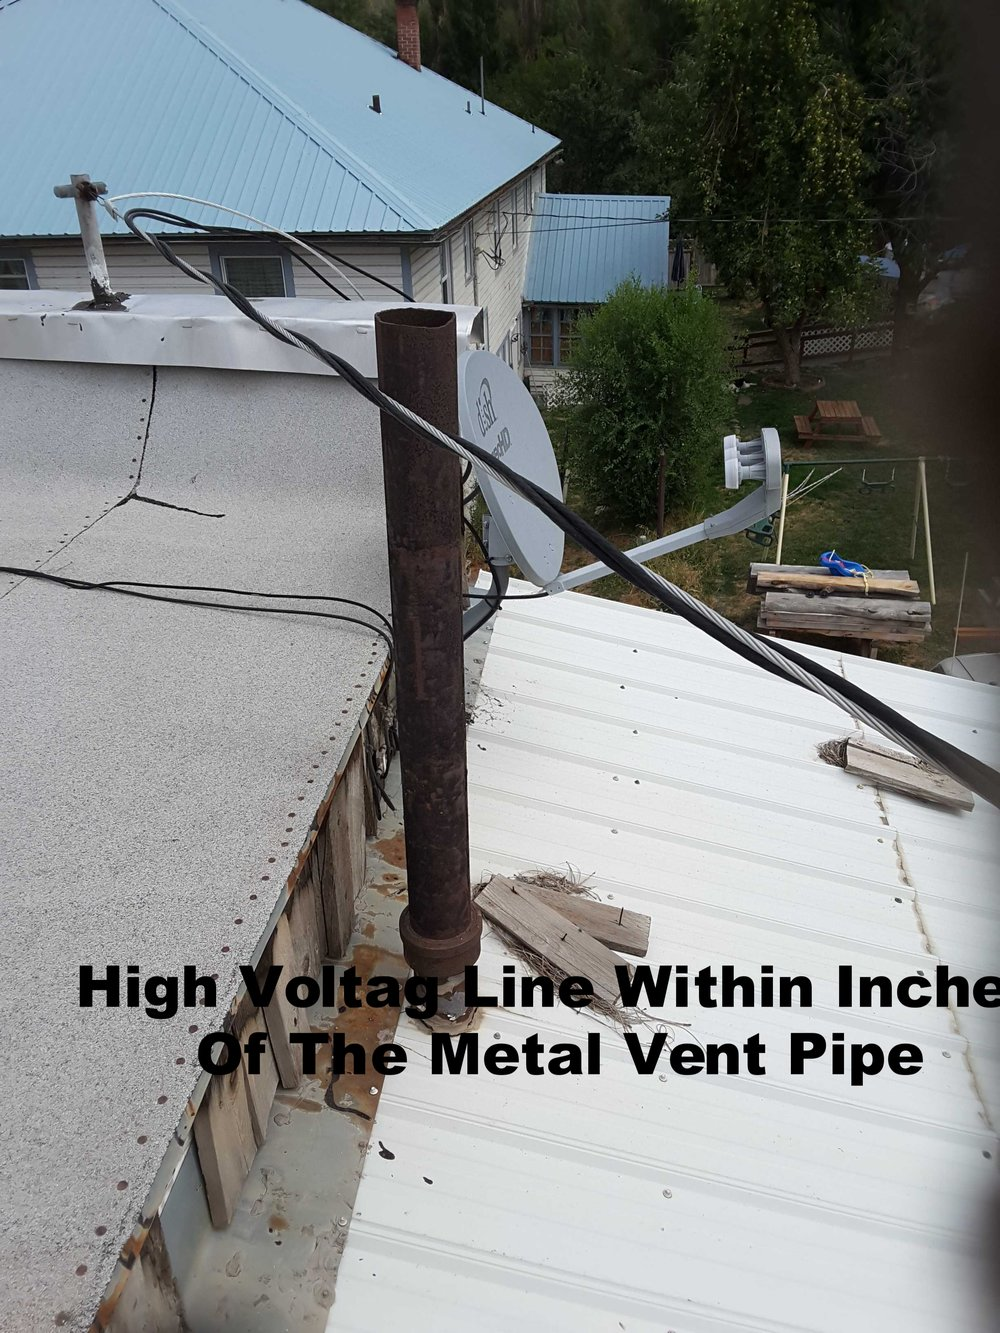 Hard To Believe - Very possible this high voltage line could entergize all of the metal fixtures and countertops in this restaurant